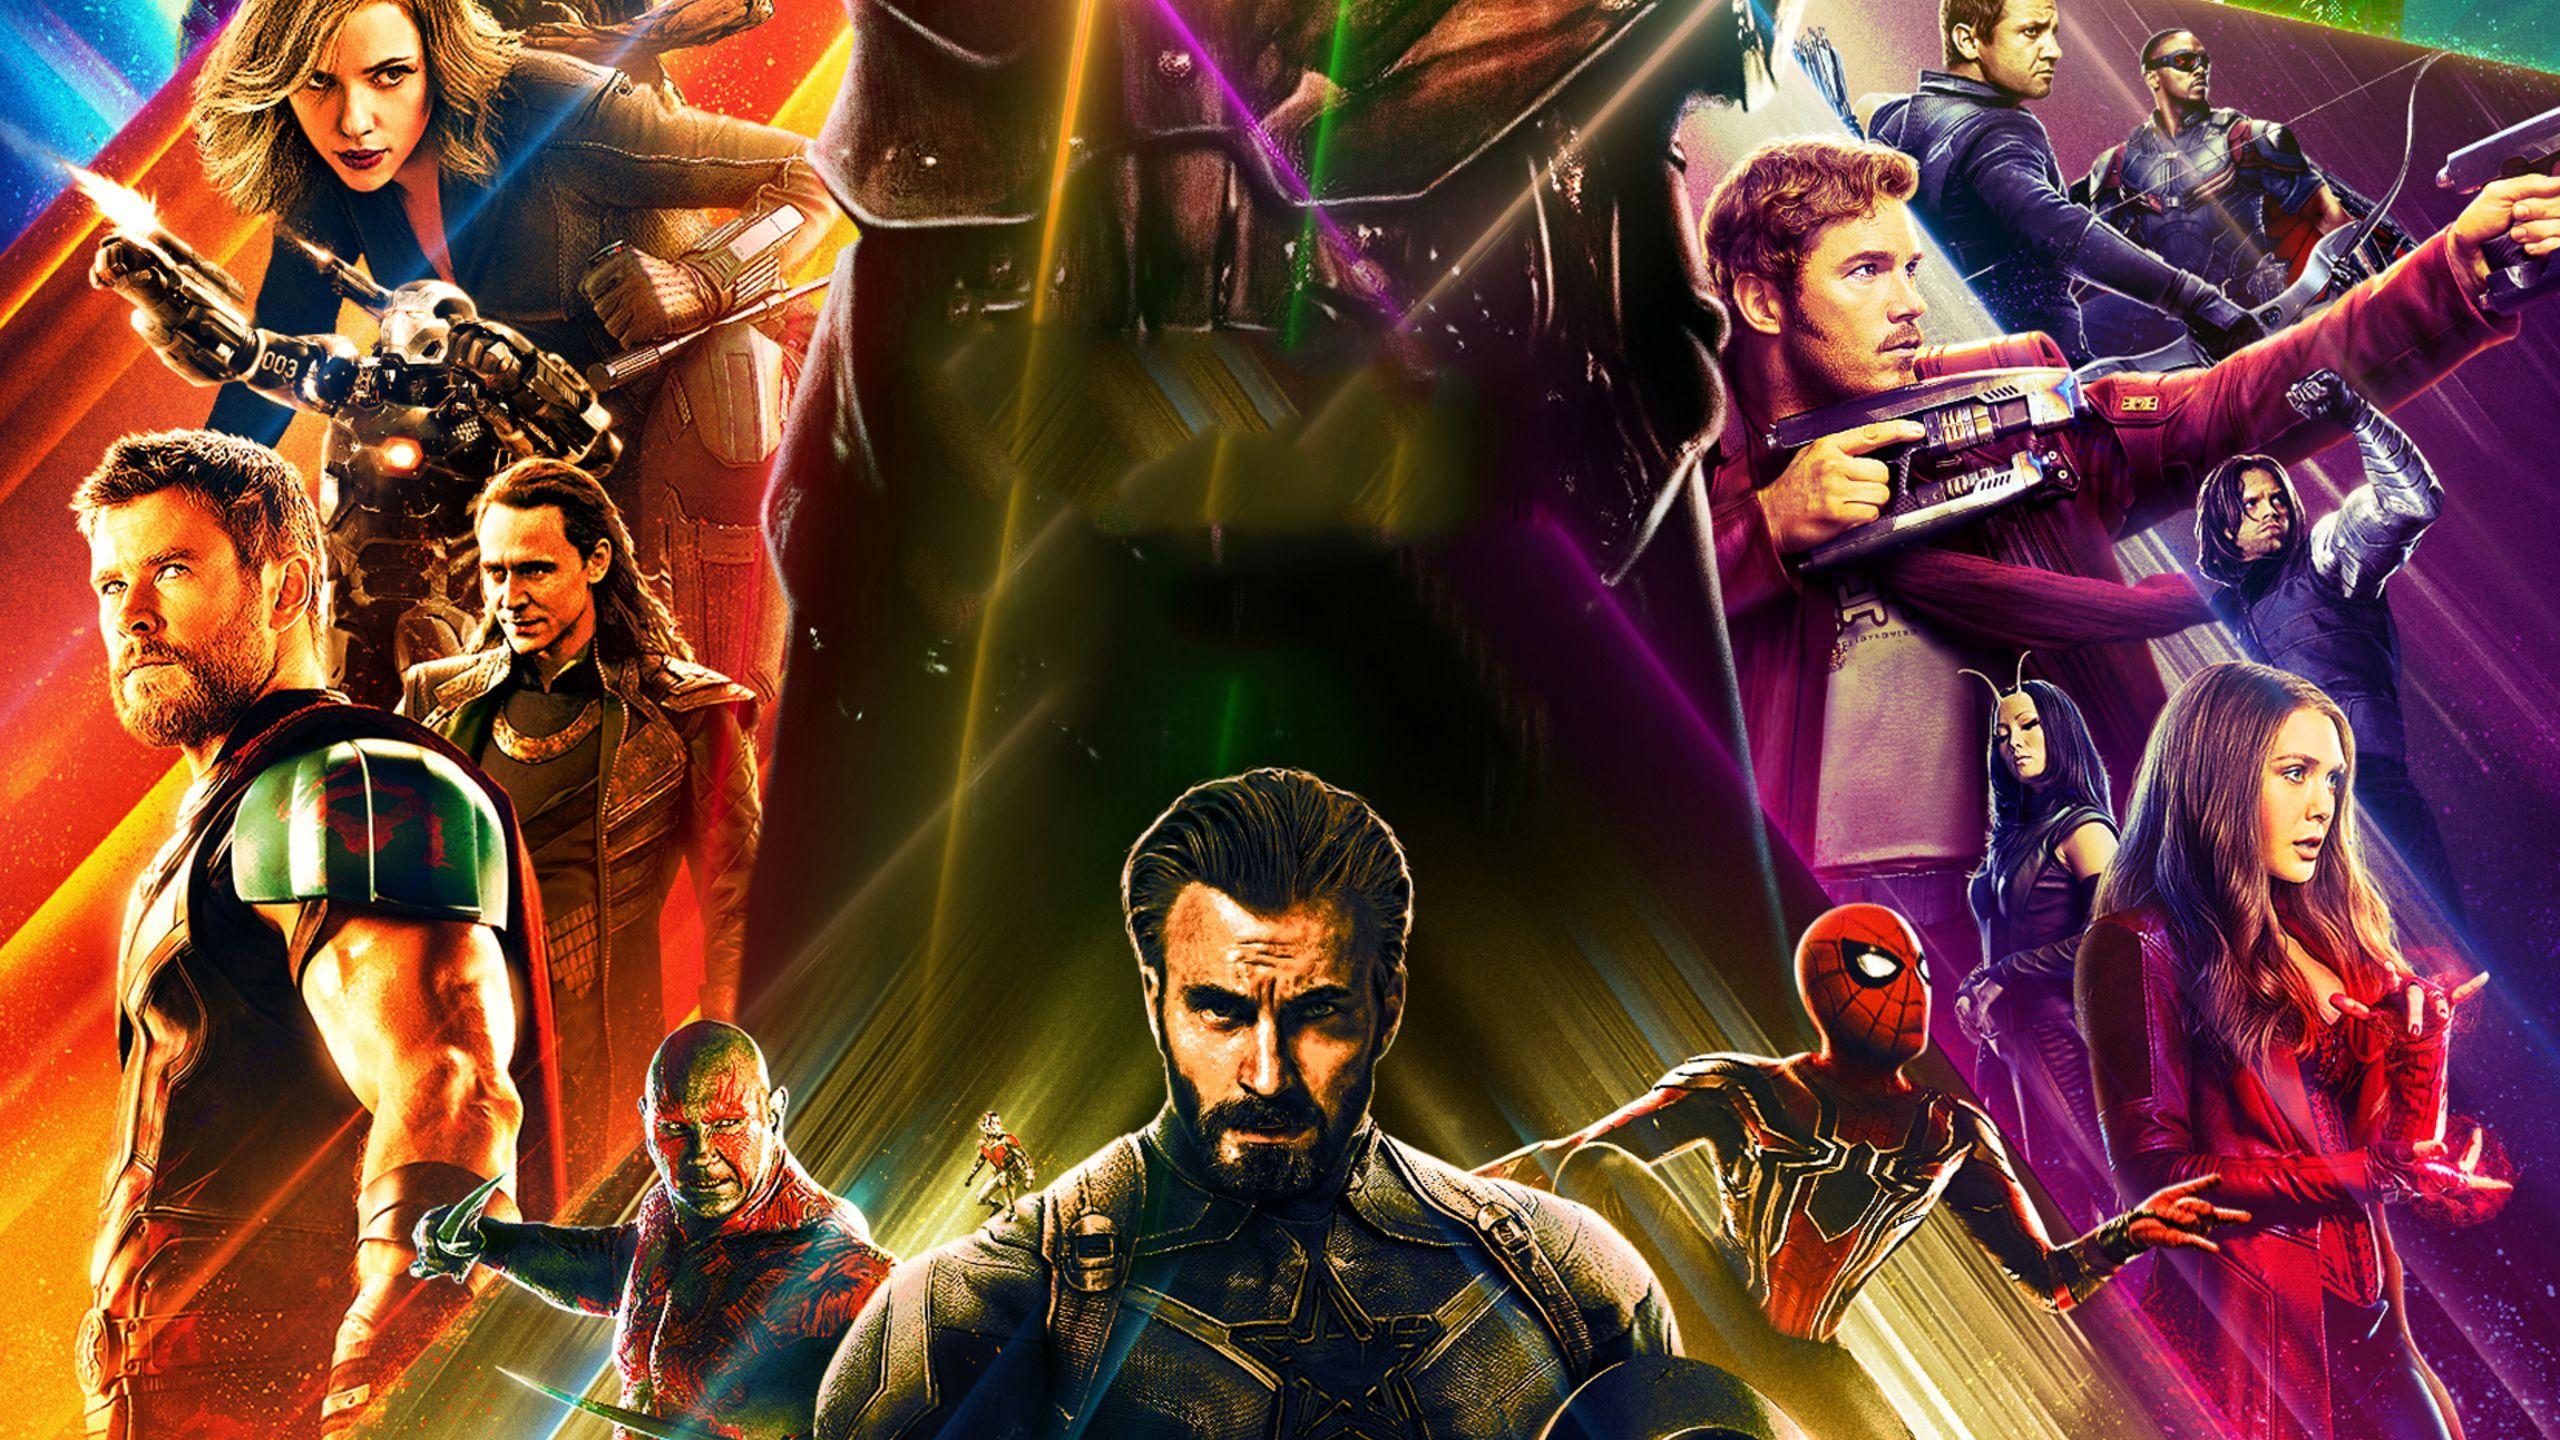 2560x1440 Avengers Infinity War Artwork 2018 HD 1440P Resolution HD